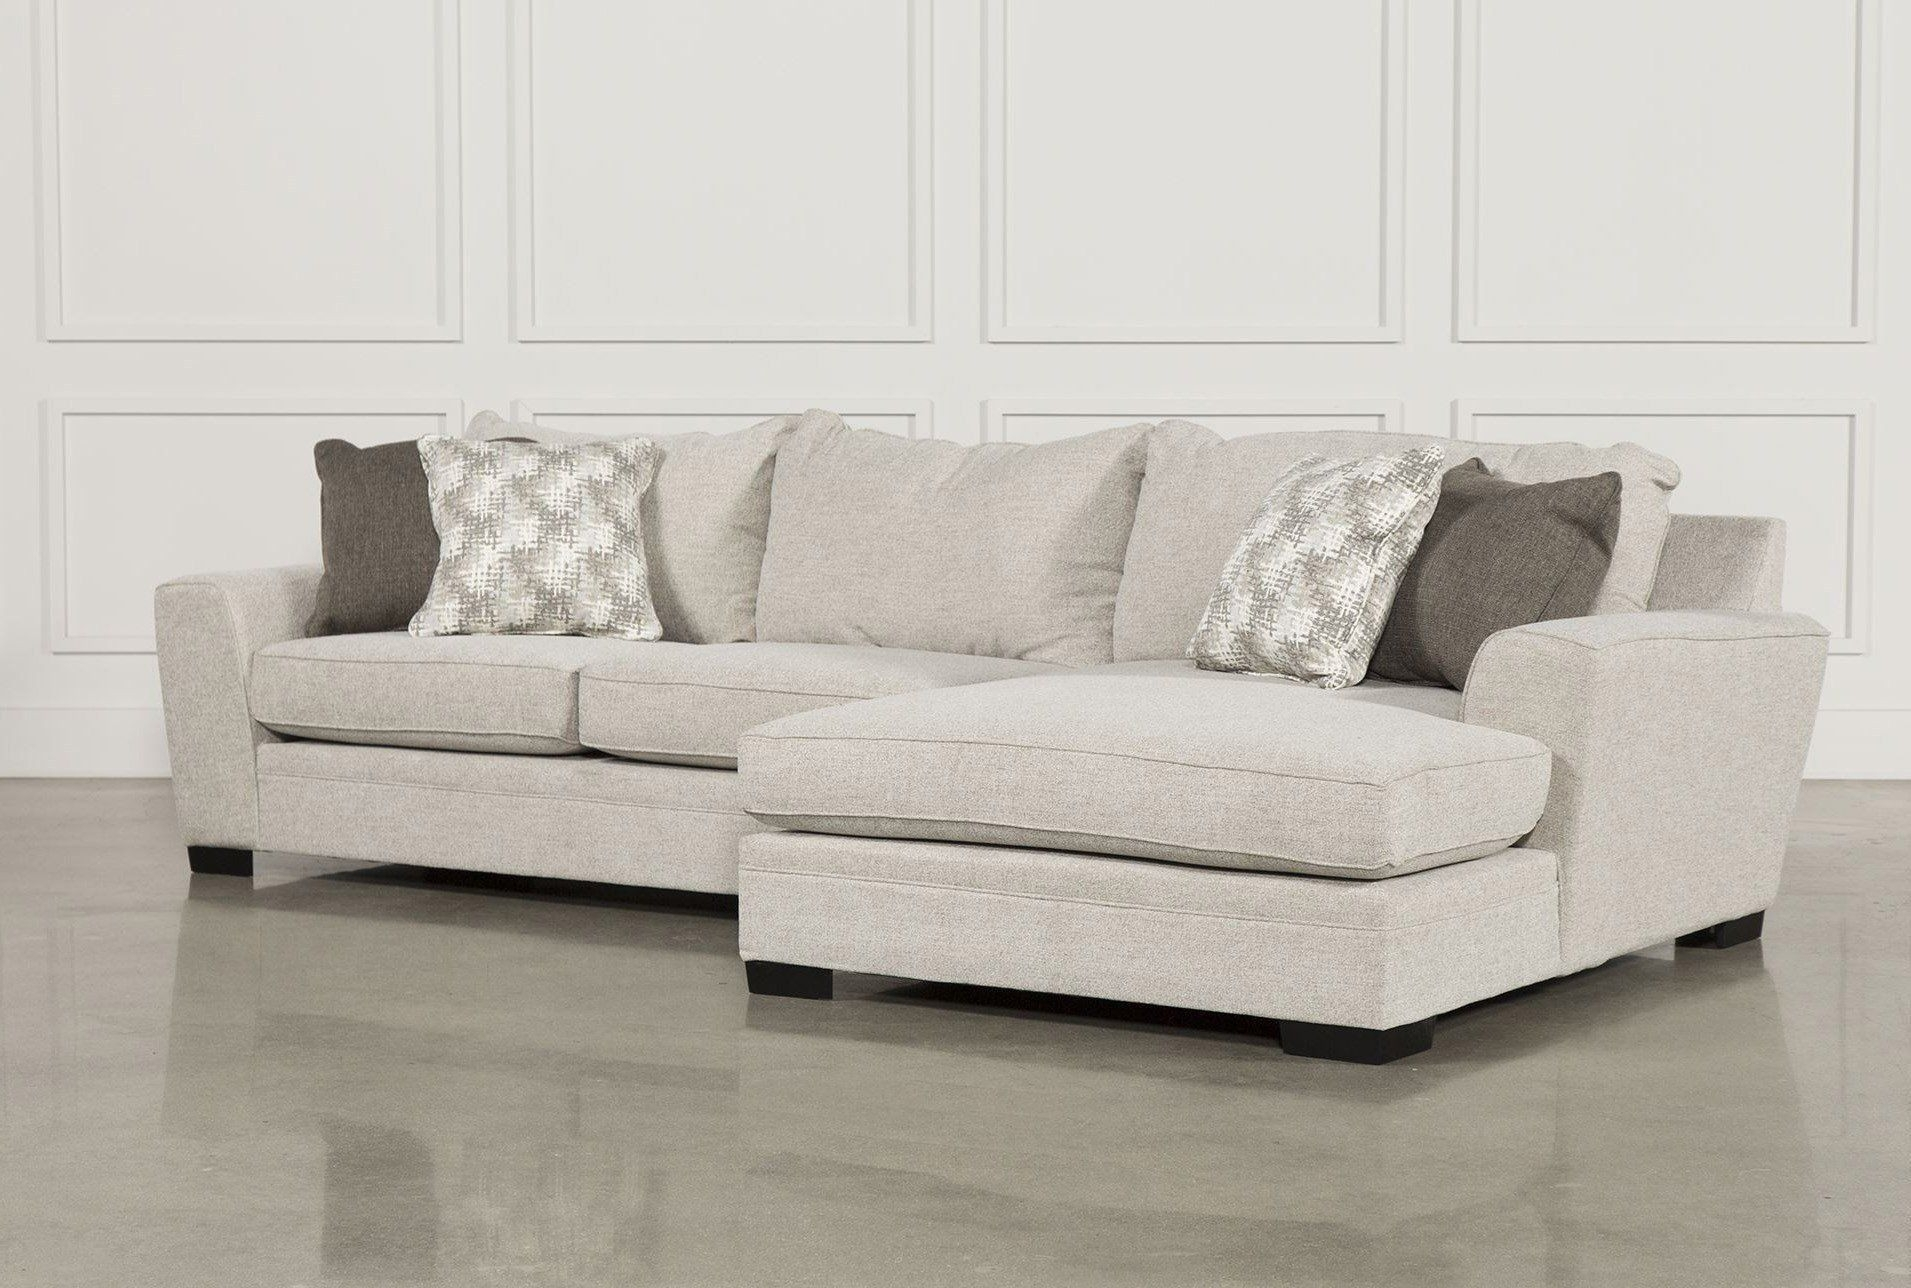 16 Luxury Serta Cooling Memoryfil Pillow | Beautiful Pillow Design Inside Aquarius Light Grey 2 Piece Sectionals With Laf Chaise (Image 1 of 25)